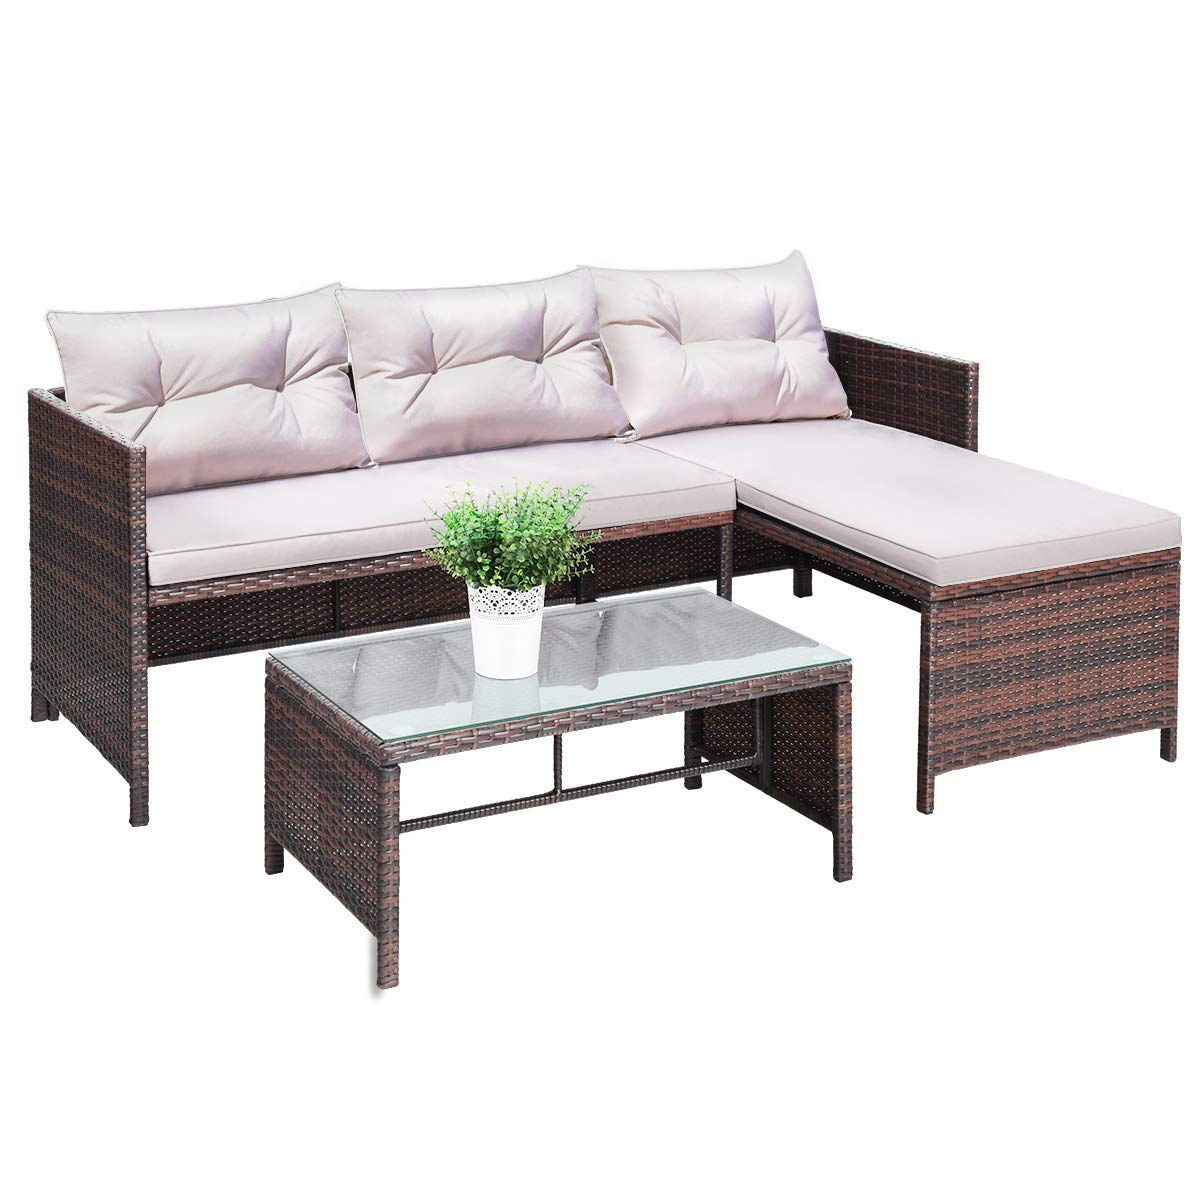 TANGKULA Patio Furniture Set, 3 Piece All Weather Resistant Steel Frame Construction Compact Wicker Lounge Chaise with Glass Top Coffee Table, Poolside Garden Lawn Balcony Patio Outdoor Wicker Furnitu